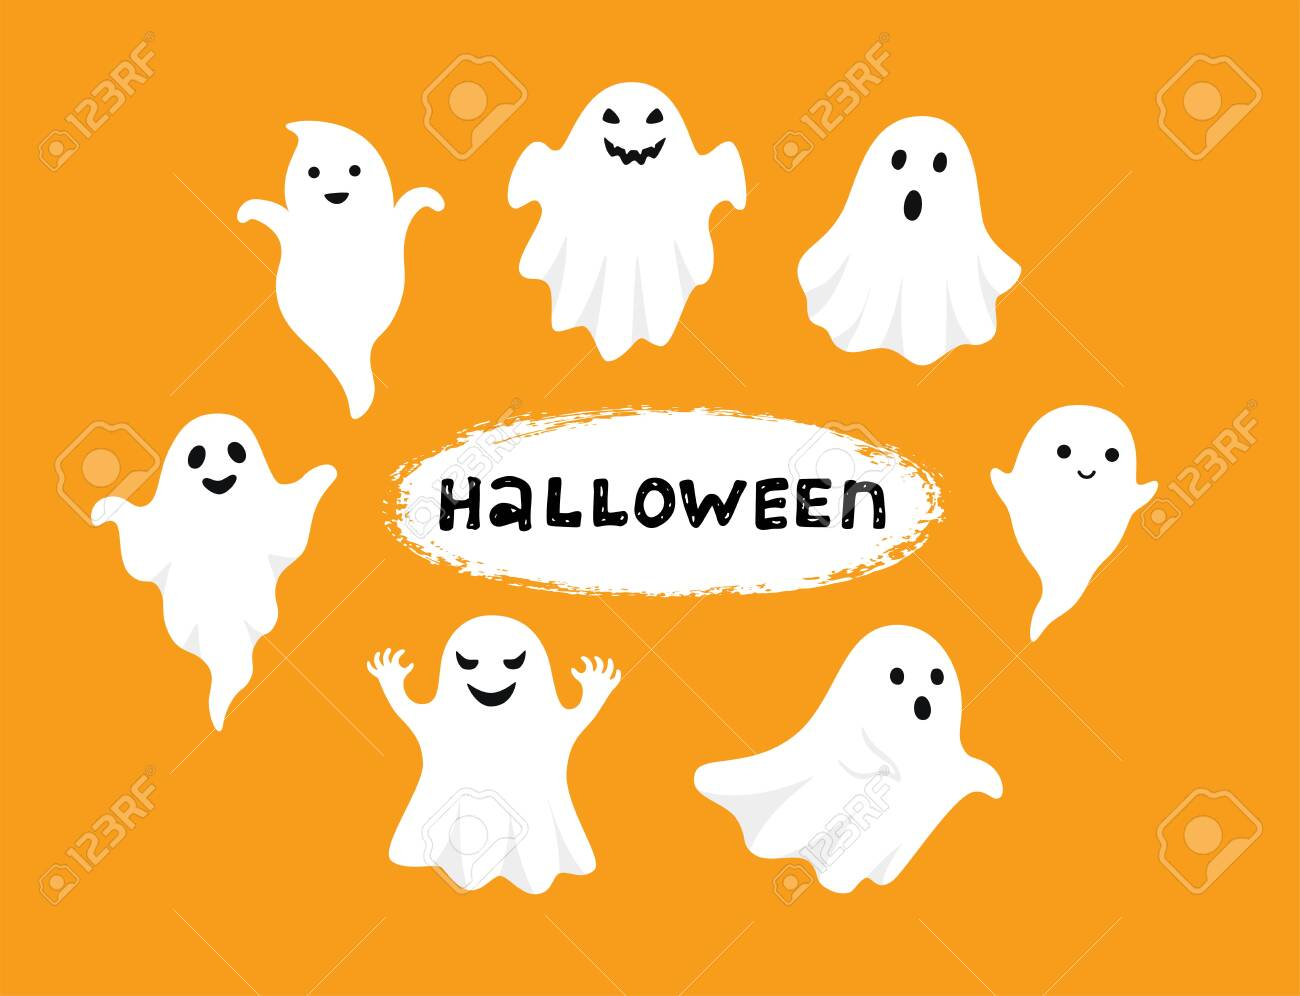 Happy Halloween, Ghost, Scary white ghosts. Cute cartoon spooky..